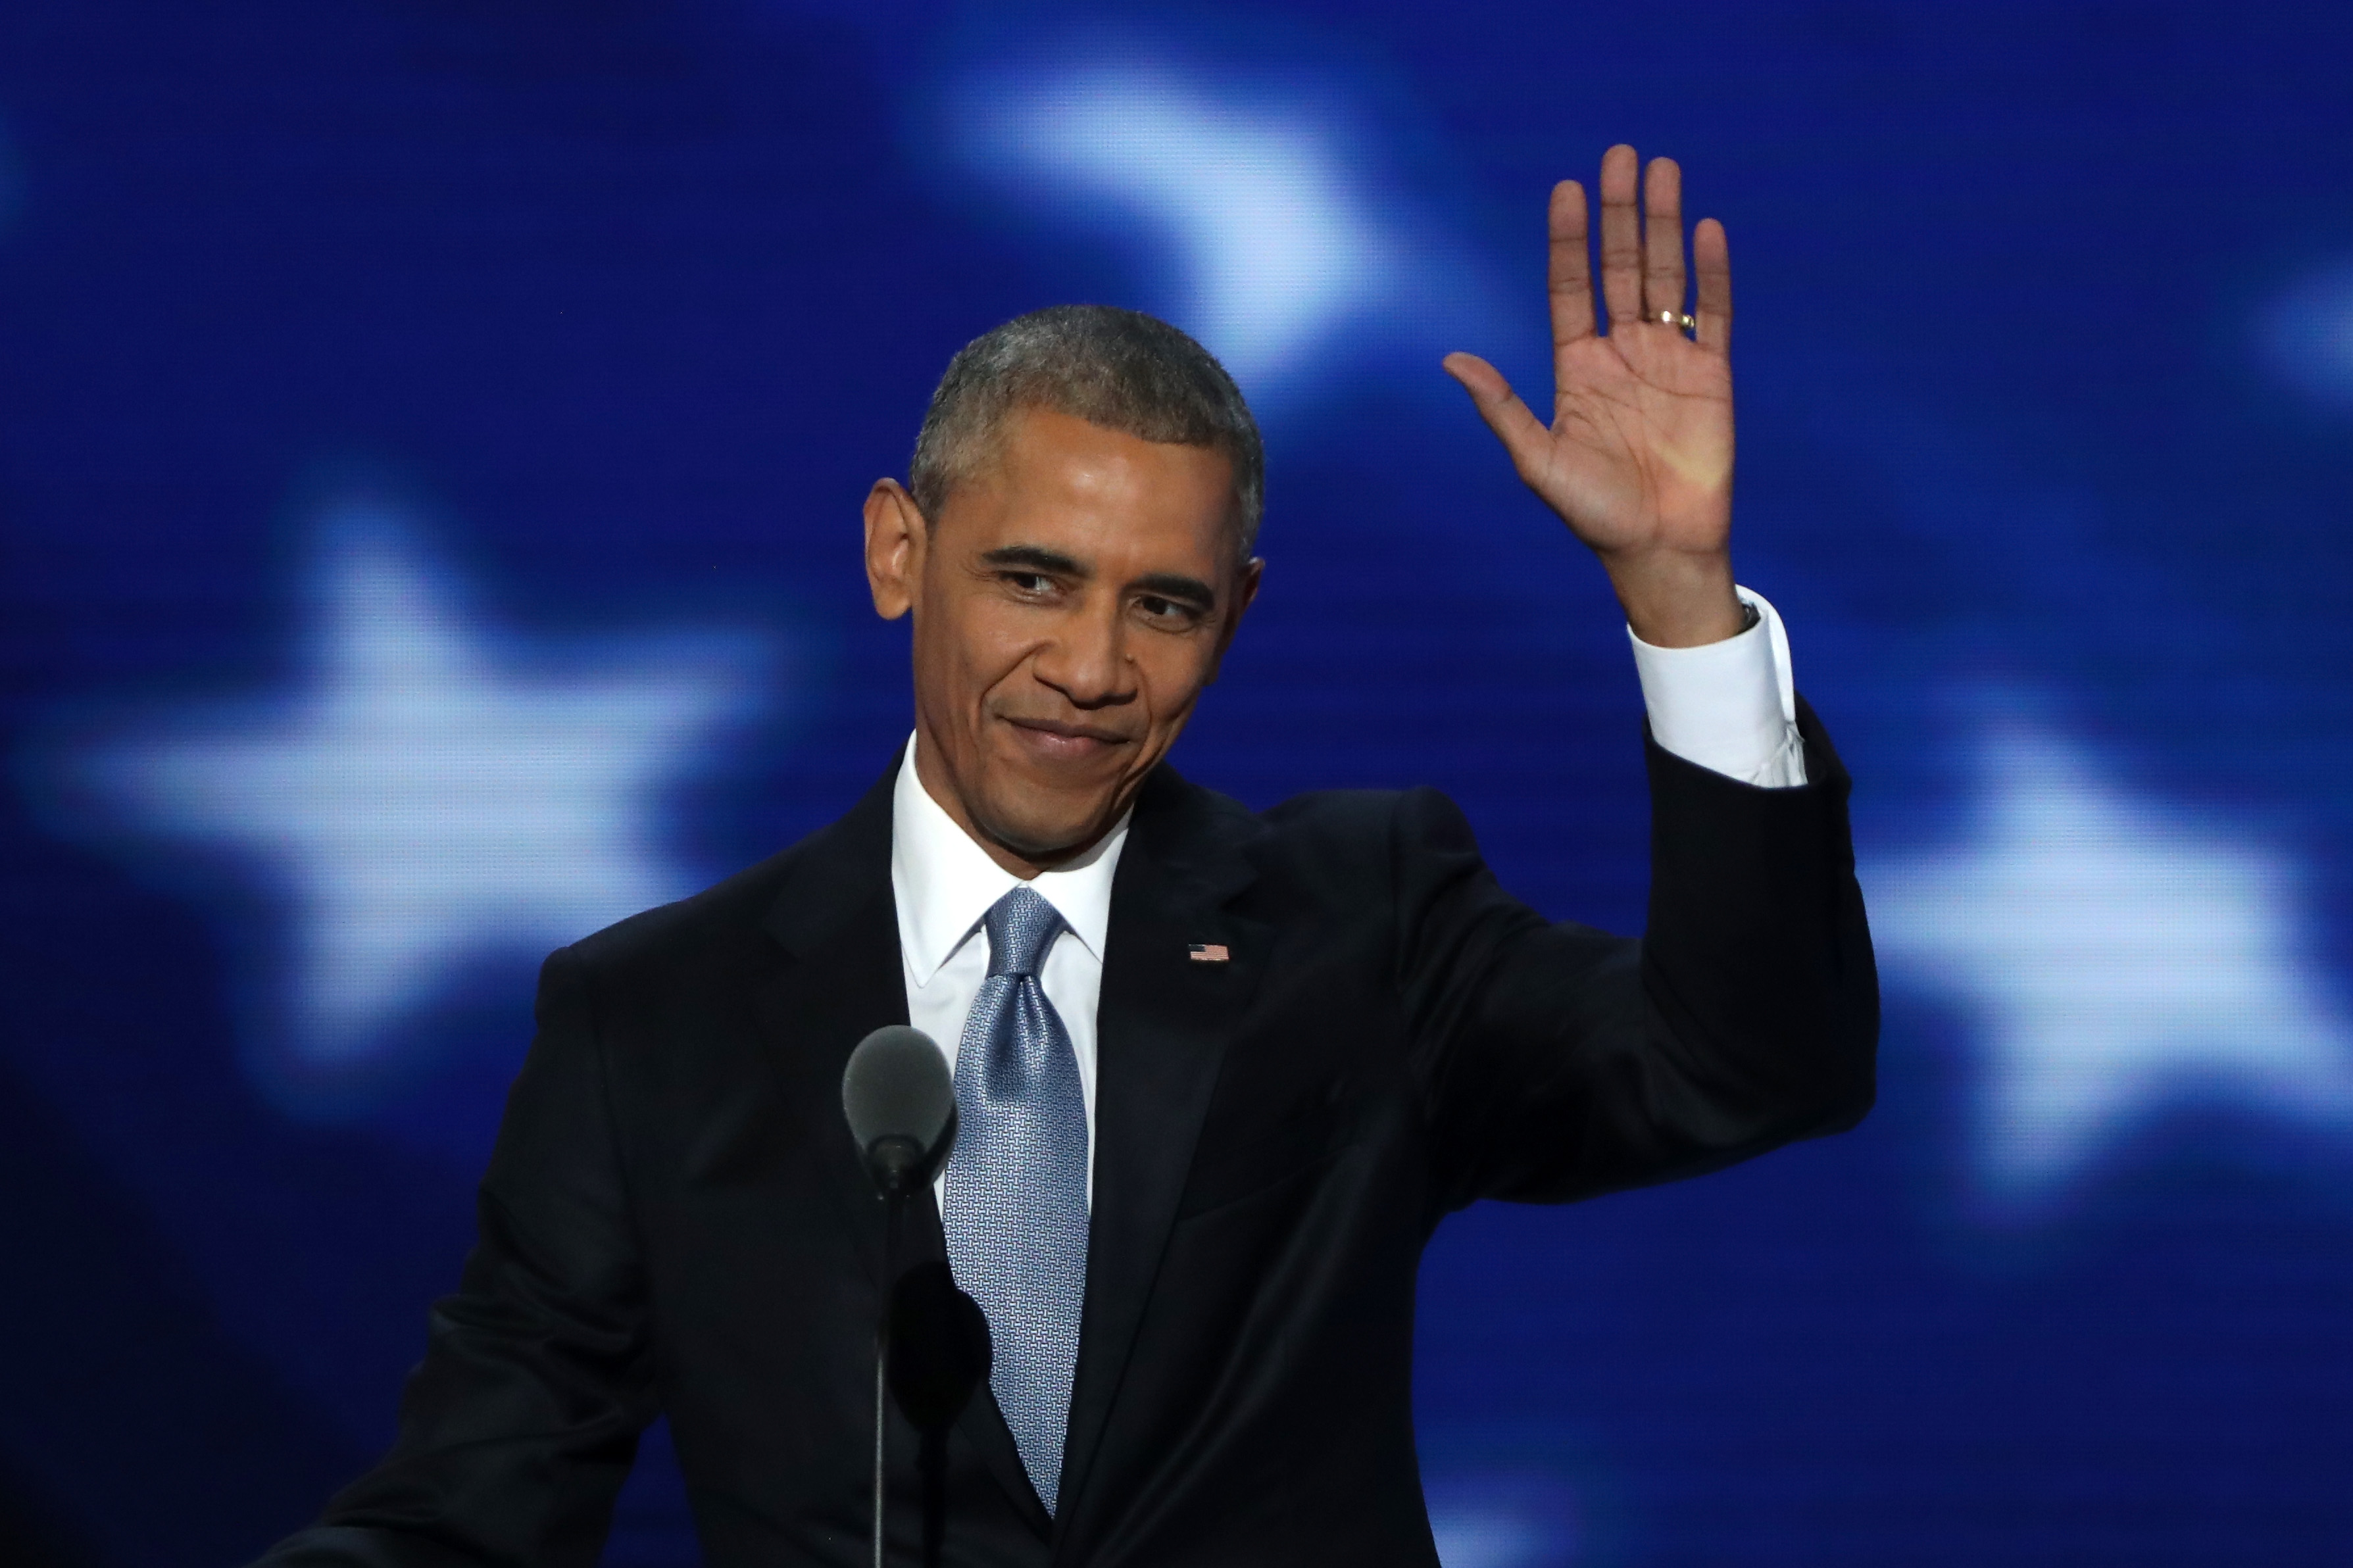 PHILADELPHIA, PA - JULY 27: US President Barack Obama acknowledges the crowd as he arrives on stage to deliver remarks on the third day of the Democratic National Convention at the Wells Fargo Center, July 27, 2016 in Philadelphia, Pennsylvania. Democratic presidential candidate Hillary Clinton received the number of votes needed to secure the party's nomination. An estimated 50,000 people are expected in Philadelphia, including hundreds of protesters and members of the media. The four-day Democratic National Convention kicked off July 25. (Photo by Alex Wong/Getty Images)